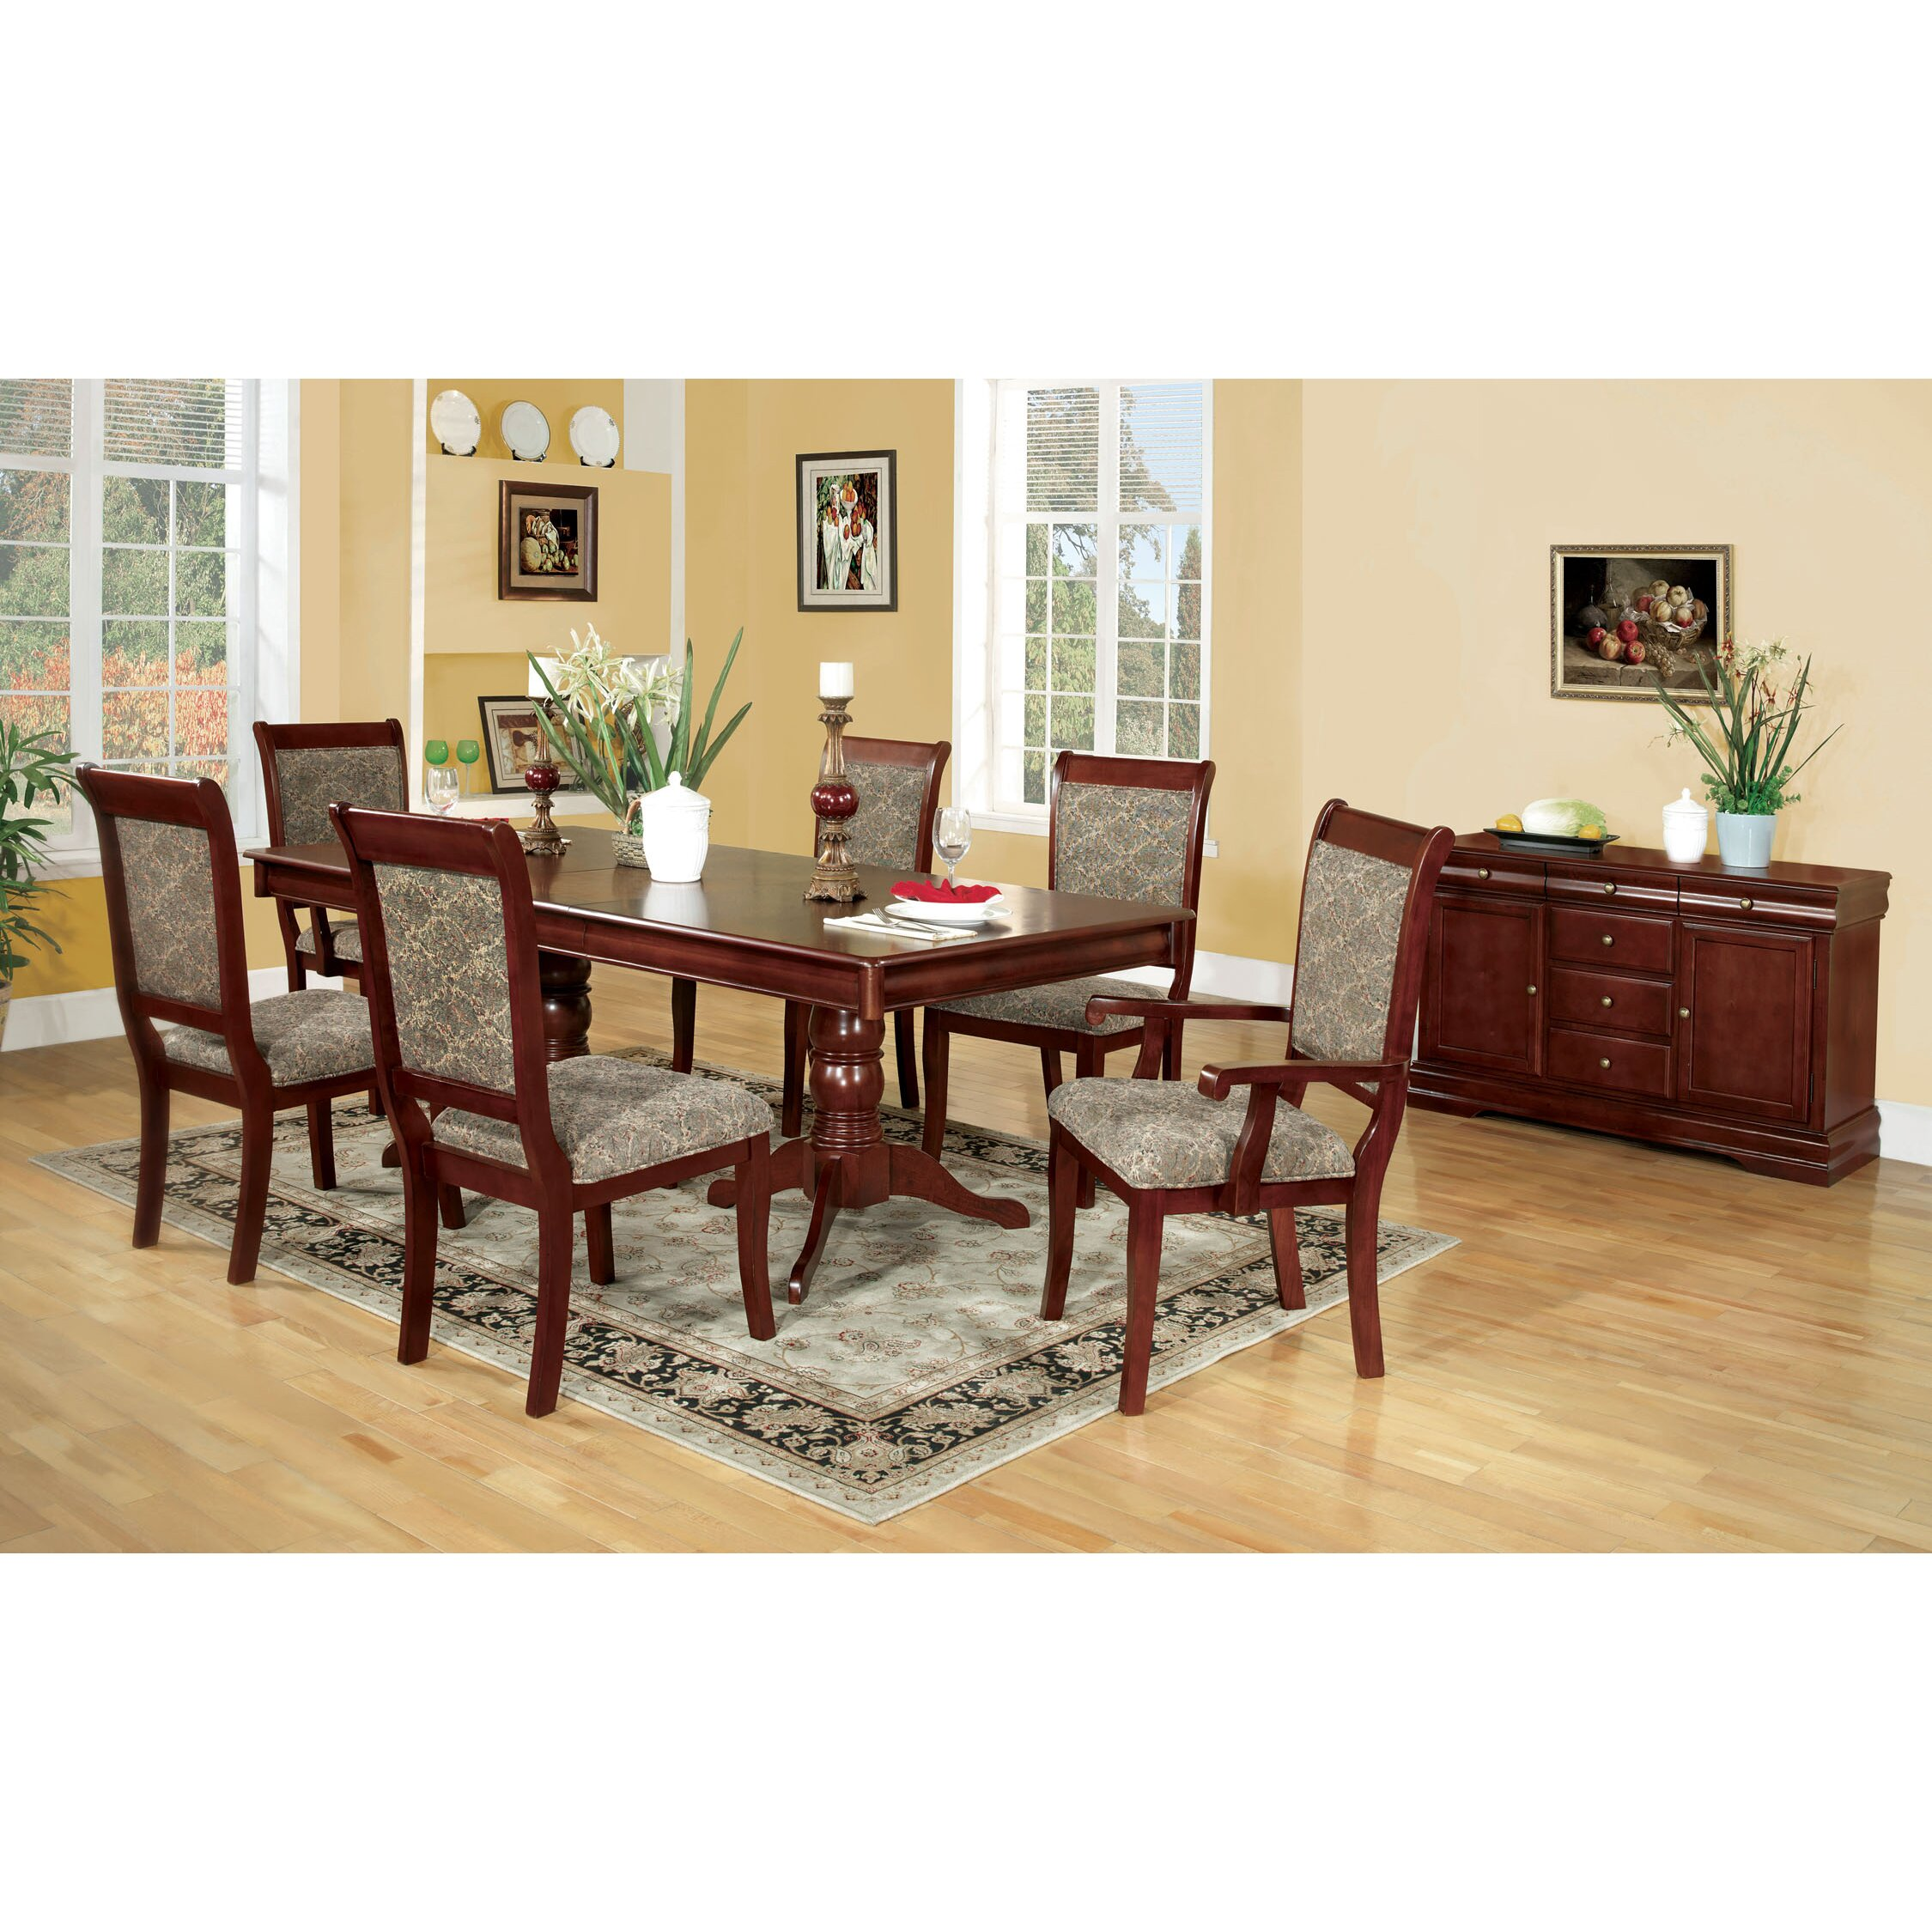 Hokku designs nikolas 7 piece dining set reviews wayfair Dining set design ideas